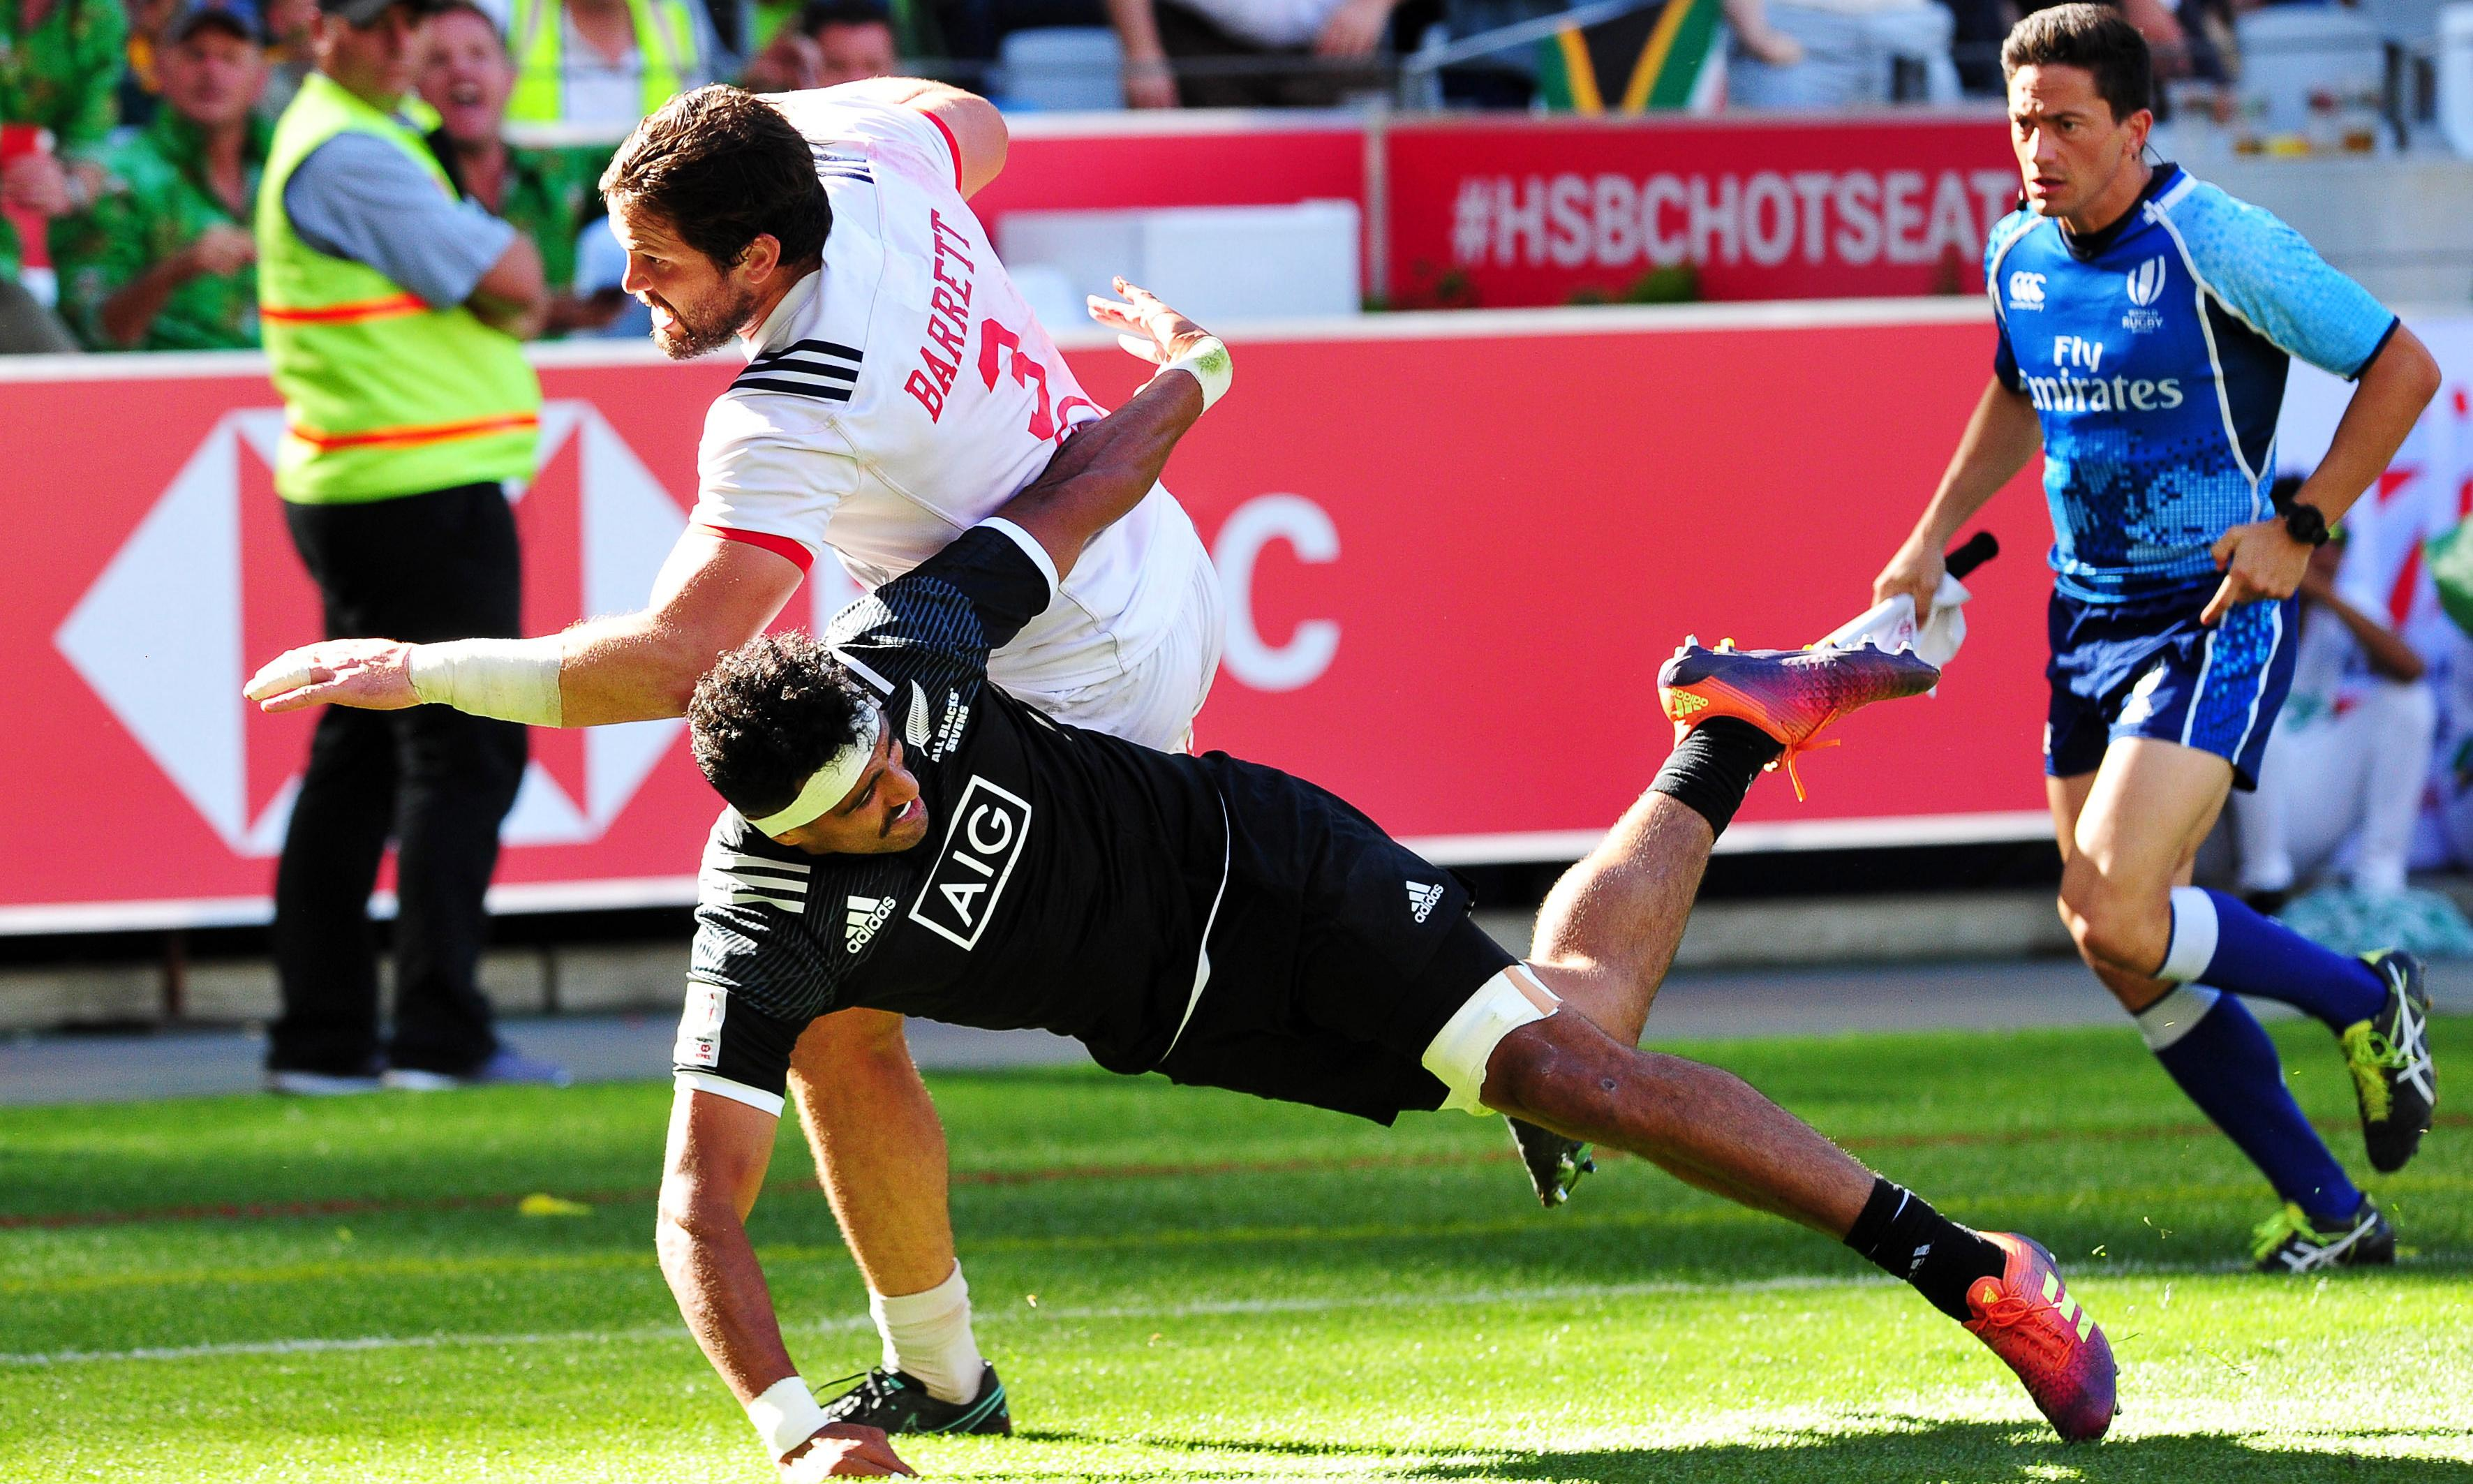 Danny Barrett's brutal brilliance puts USA top of the rugby sevens world